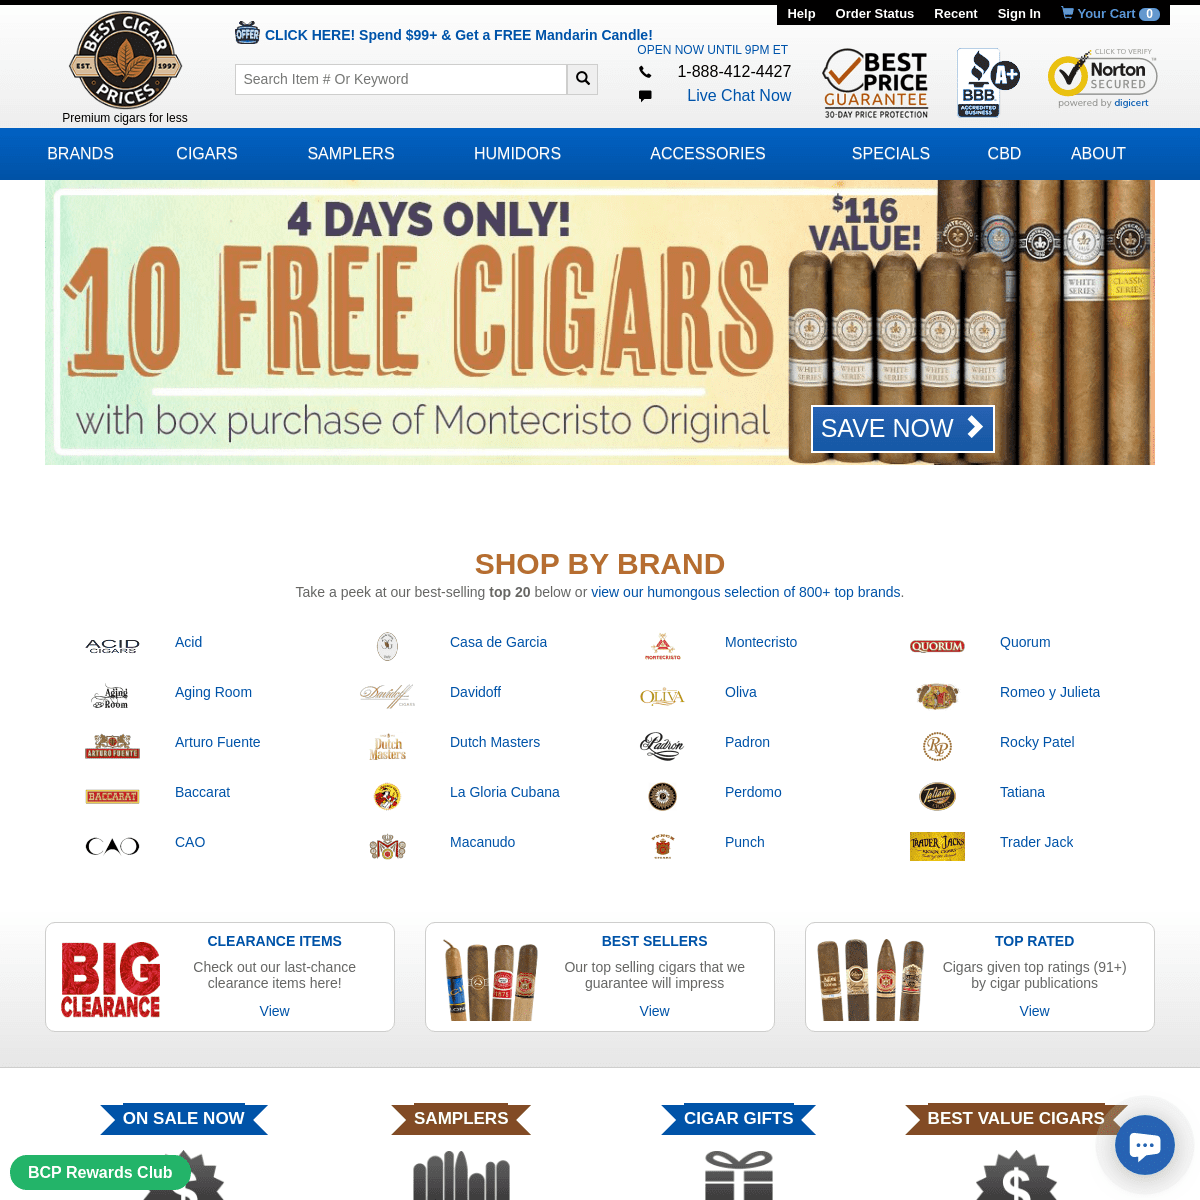 ArchiveBay.com - bestcigarprices.com - Premium Cigars, Samplers, Humidors, & More for Less - Best Cigar Prices